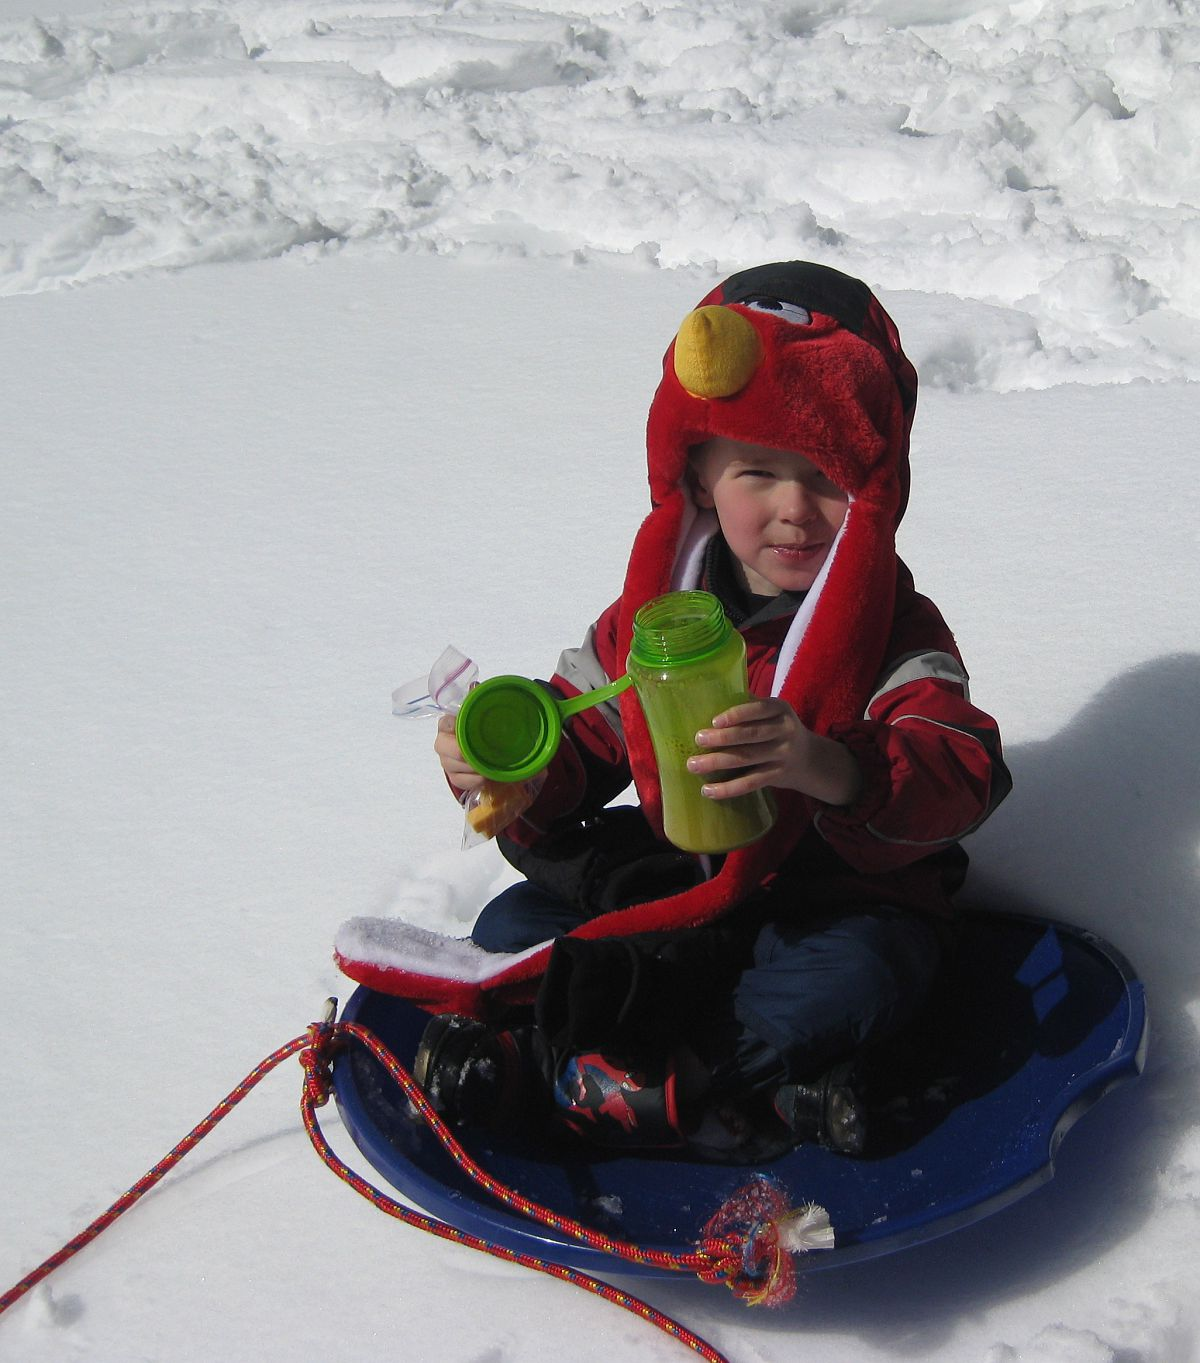 Chocolate milk, anyone? - from the Snowshoe Trip to Twin Lake 2013 photo gallery.